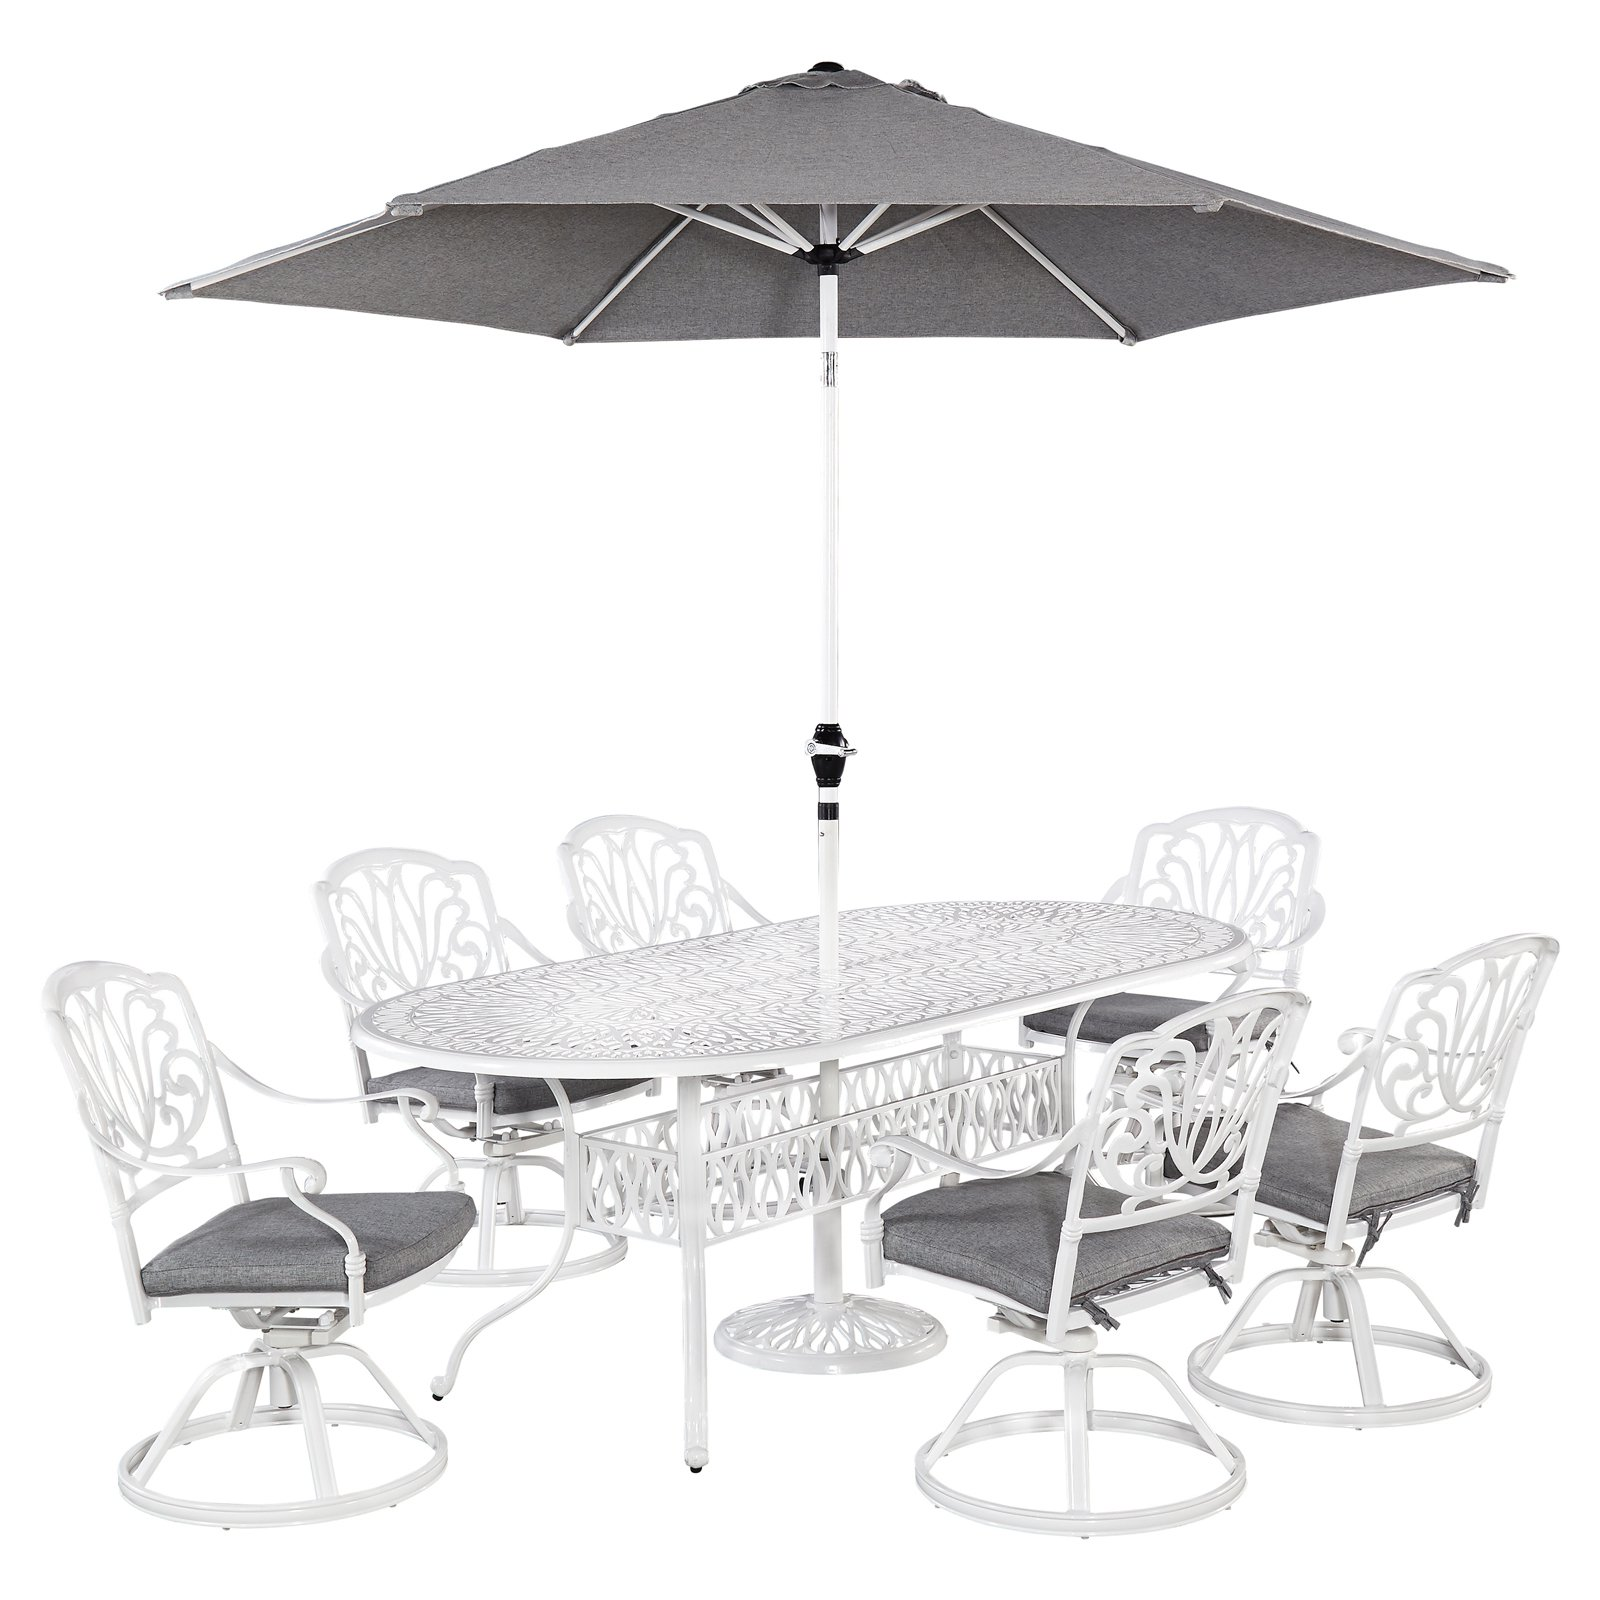 Home Styles Floral Blossom White 7pc Outdoor Dining Set with Oval Table and 6 Swivel Chairs